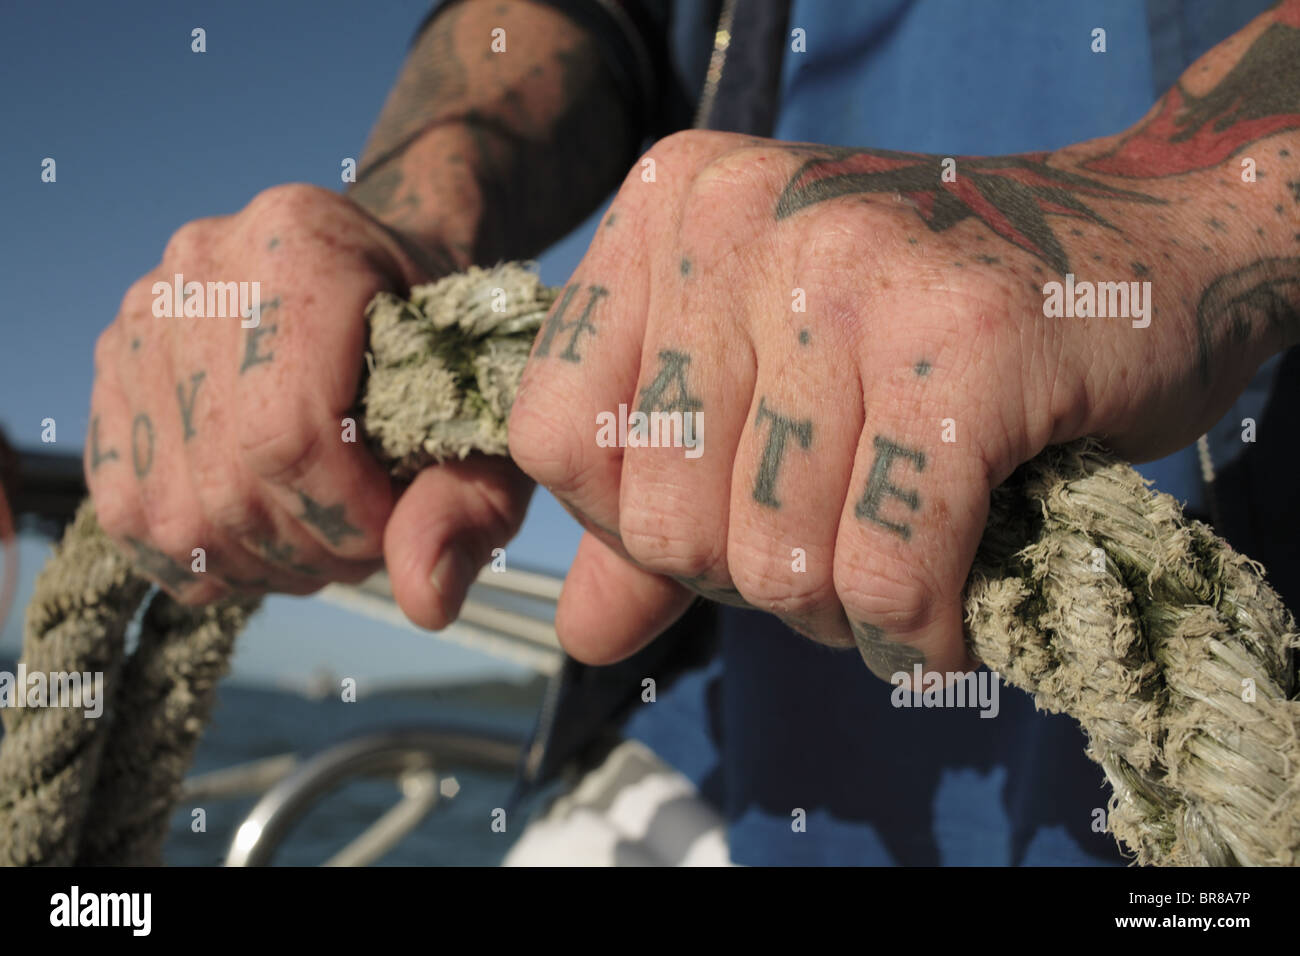 Sailor Tattoos In Coral Sea Cairns Australia Stock Photo